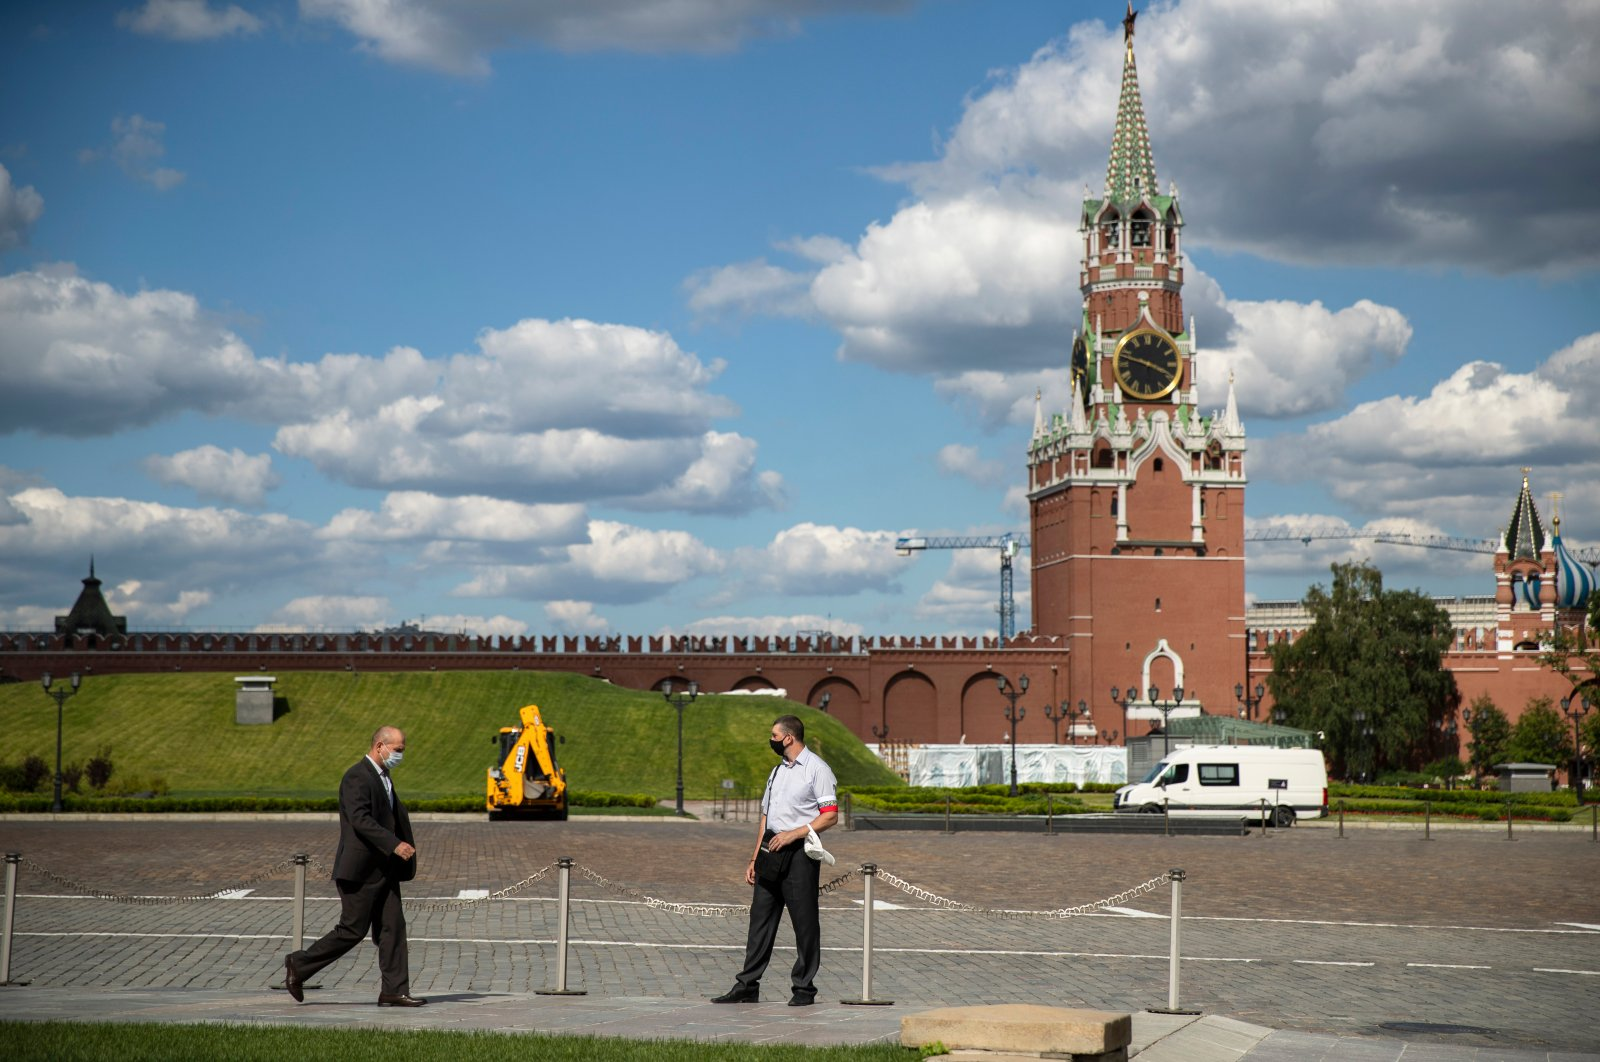 A Russian Federal Guard Service (FSO) officer (C) stands guard at the Kremlin with the Spasskaya Tower in the background, Moscow, Russia, July 10, 2020. (AP Photo)